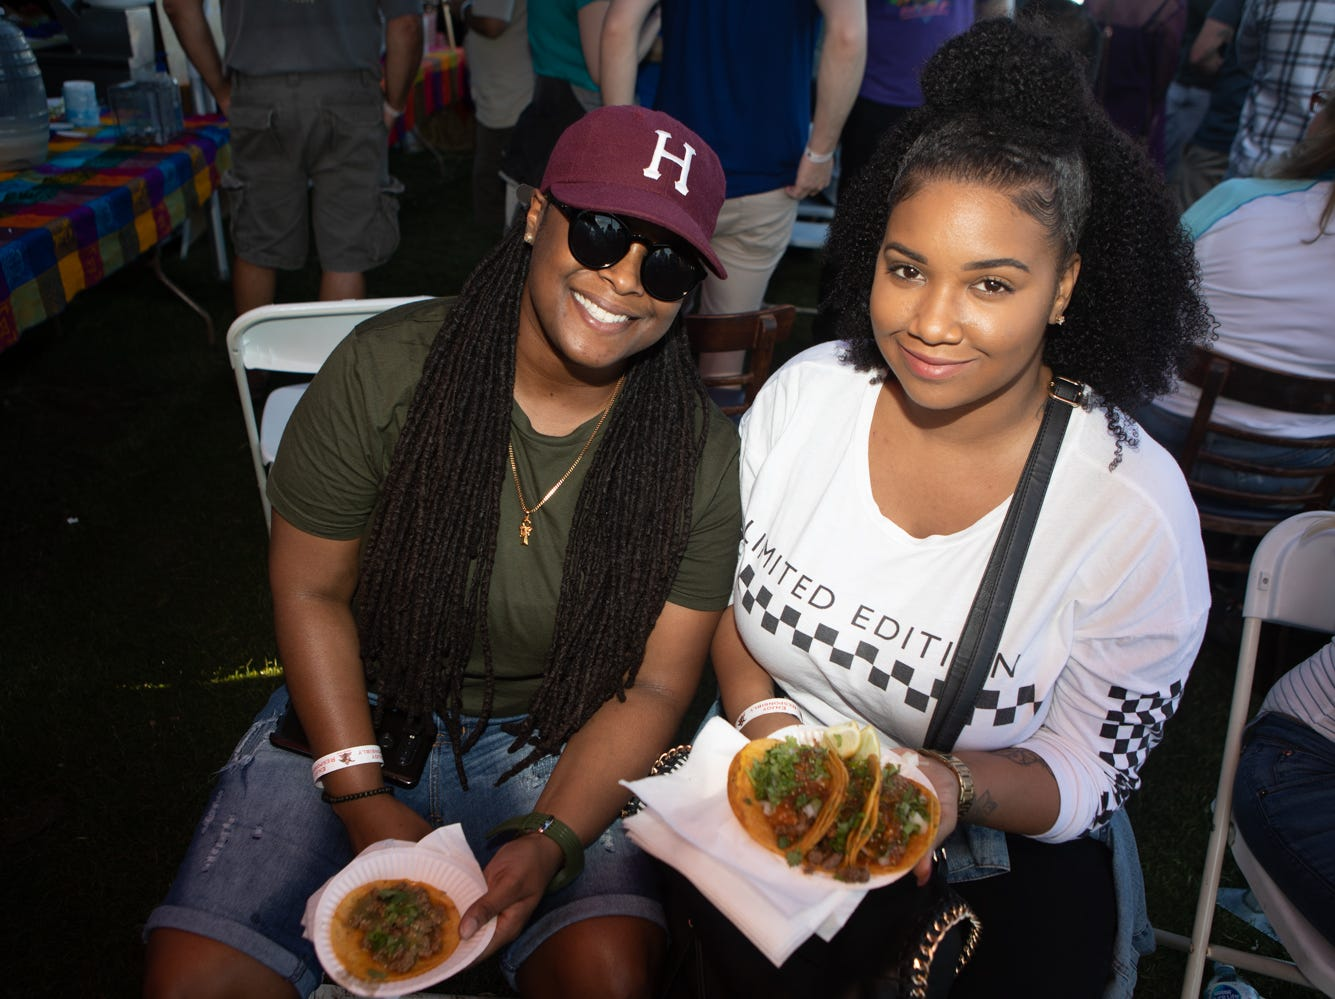 Taco enthusiasts had no problems finding tasty options at the Arizona Taco Festival at Salt River Fields on Sunday, Oct. 14, 2018 in Scottsdale.